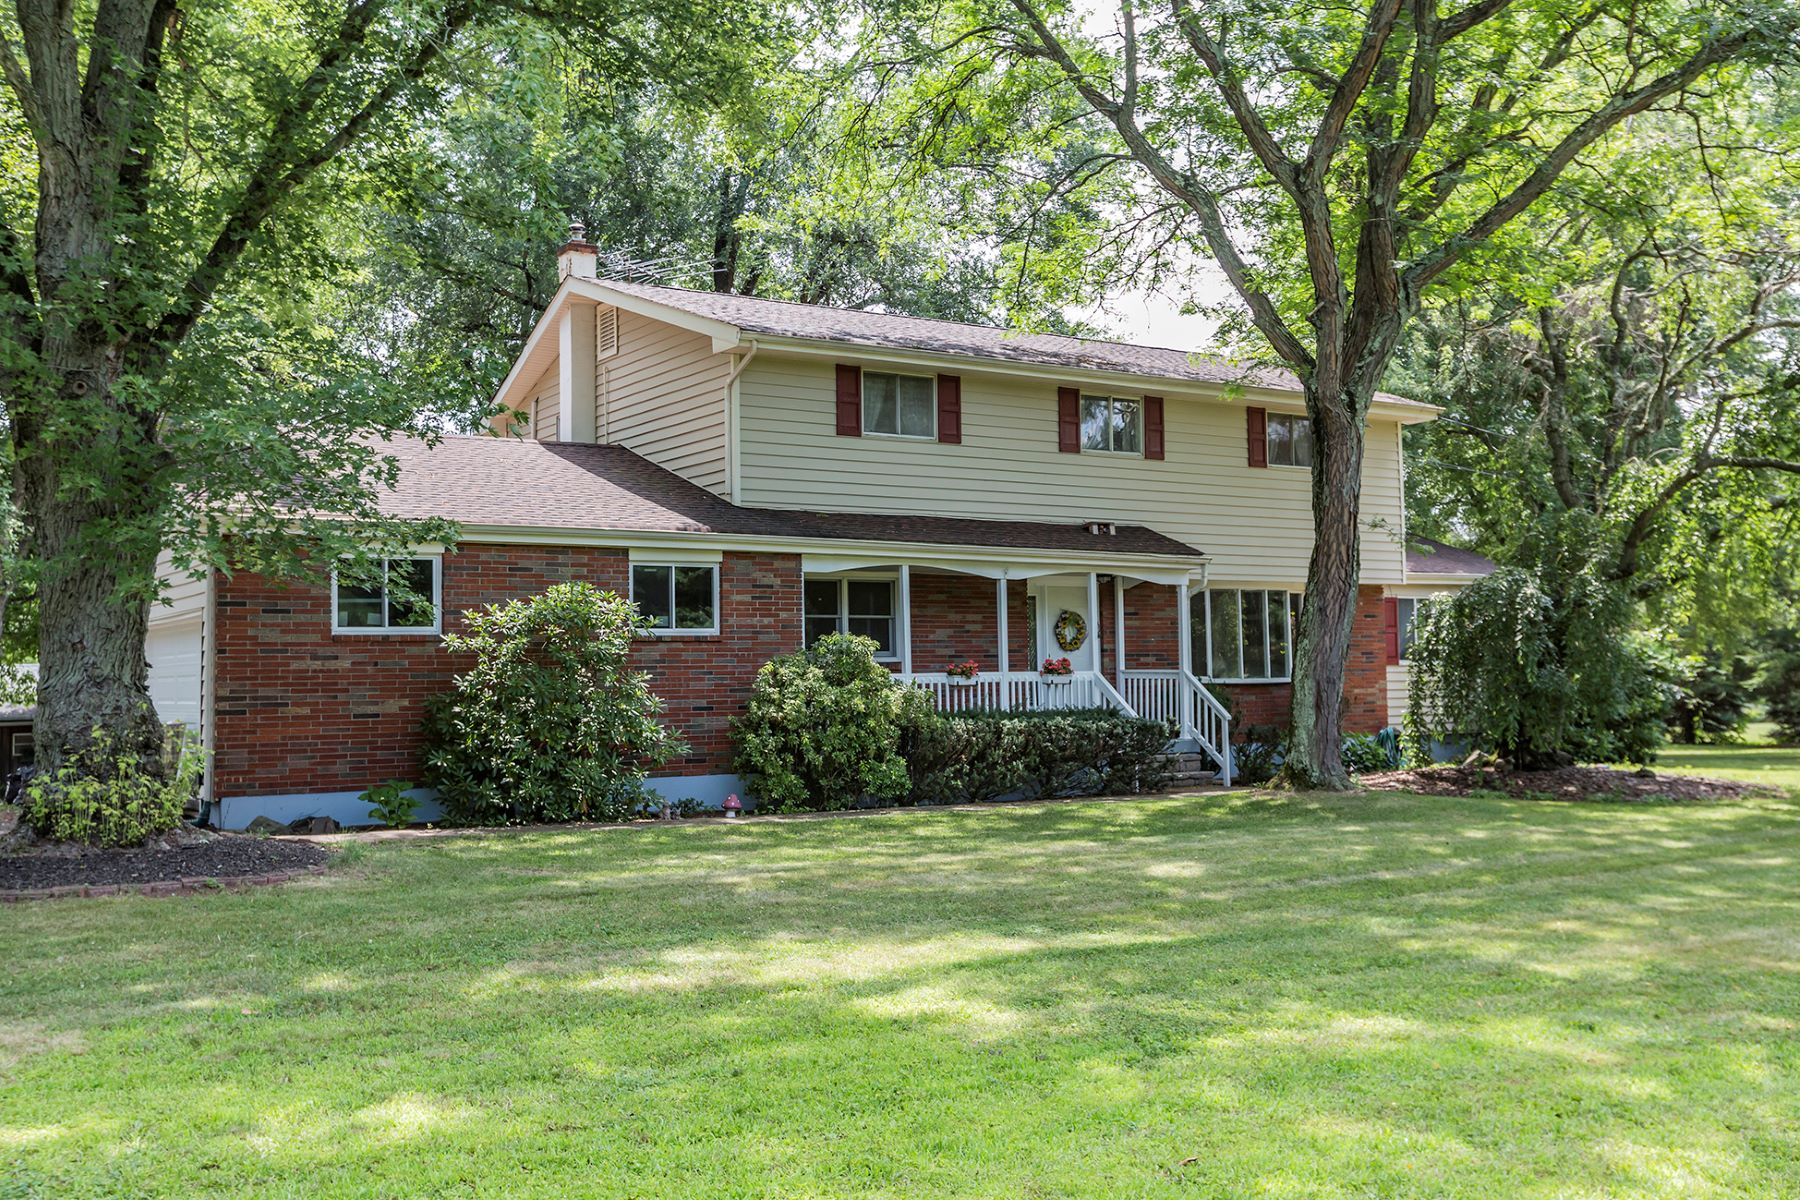 Single Family Home for Sale at Sure To Surprise And Delight - East Amwell Township 50 Rainbow Hill Road Flemington, New Jersey, 08822 United StatesIn/Around: East Amwell Township